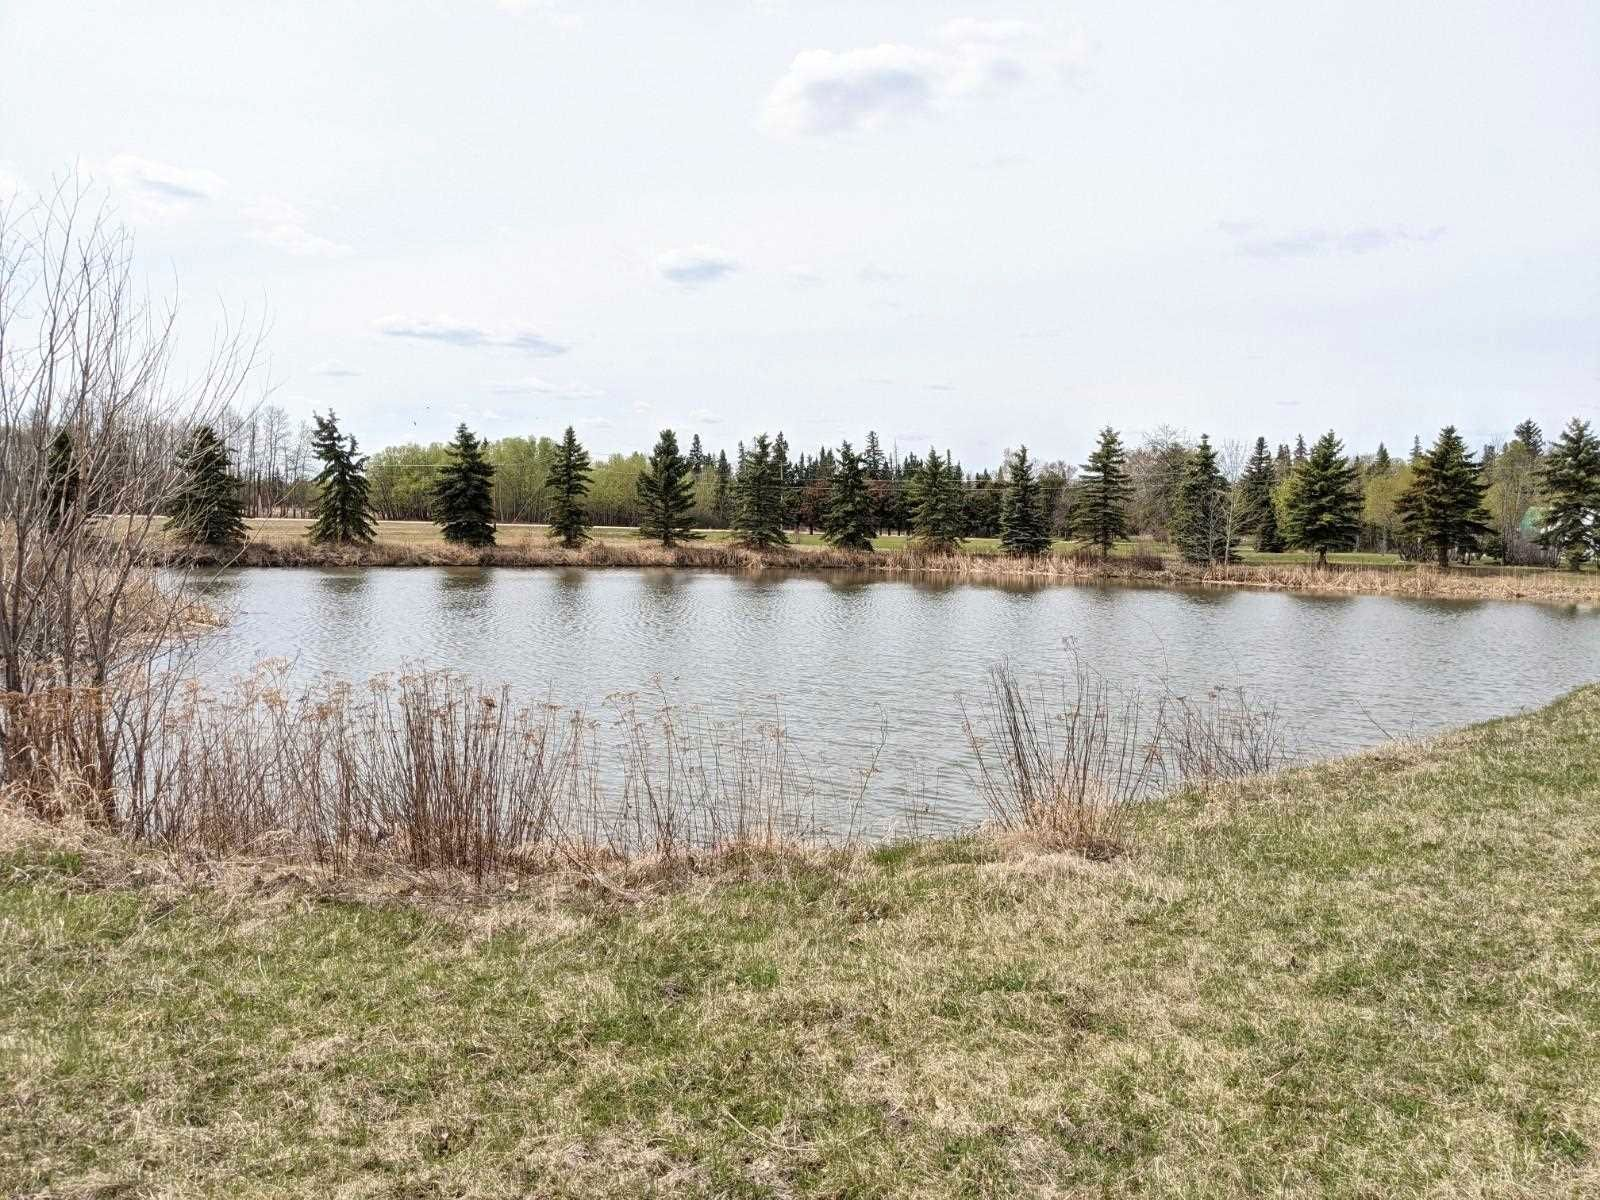 Main Photo: 46, 27118 HWY 18: Rural Westlock County Rural Land/Vacant Lot for sale : MLS®# E4238085